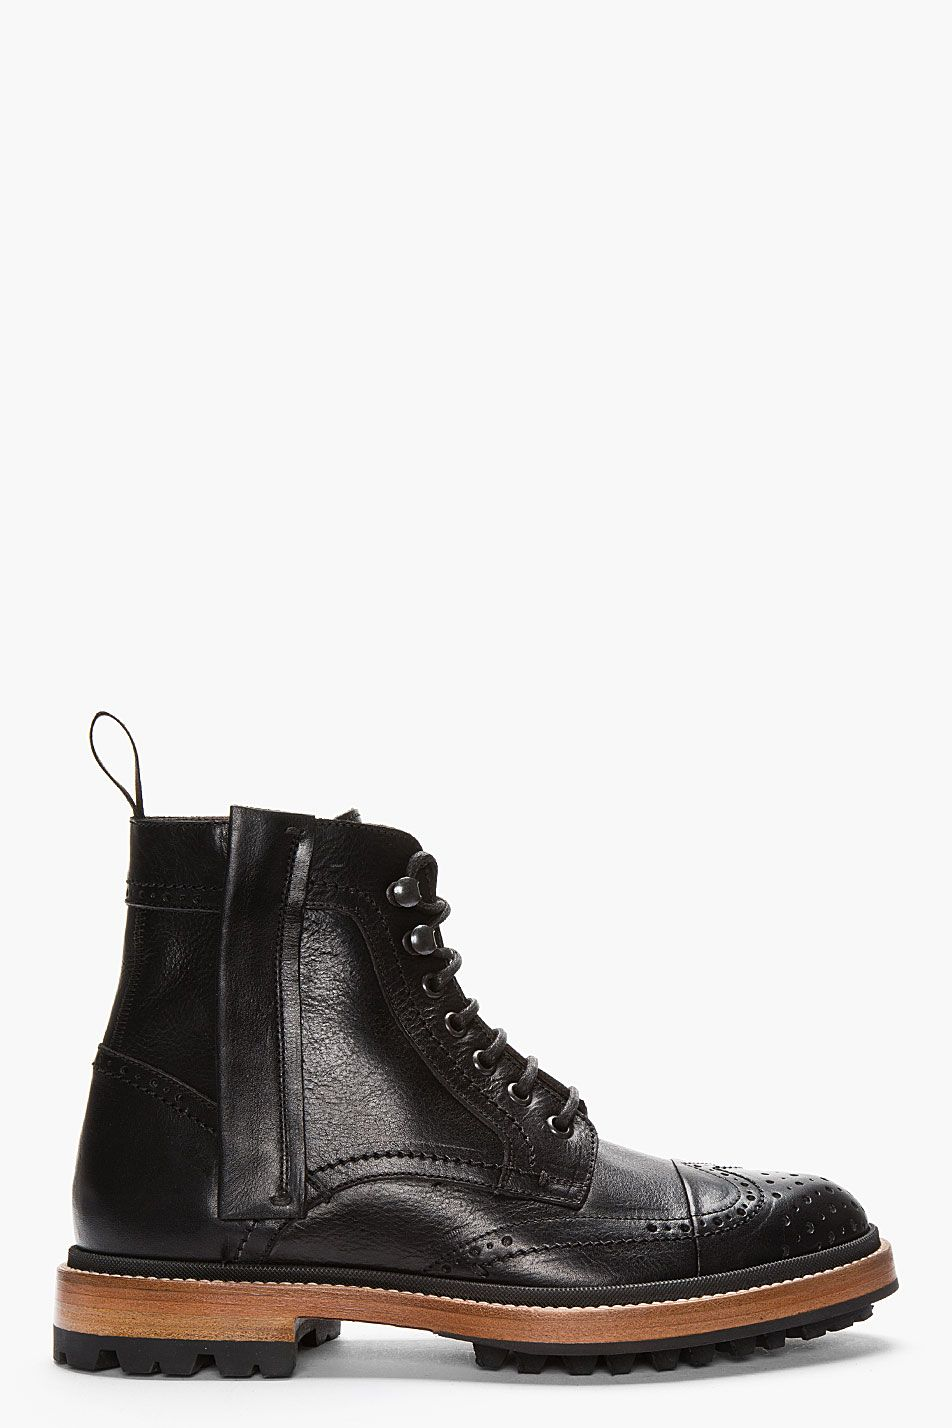 the latest 9000f 7b62e LANVIN Black Leather Brogue Boots Visit www.TheLaFashion.com for more  Fashion insights and